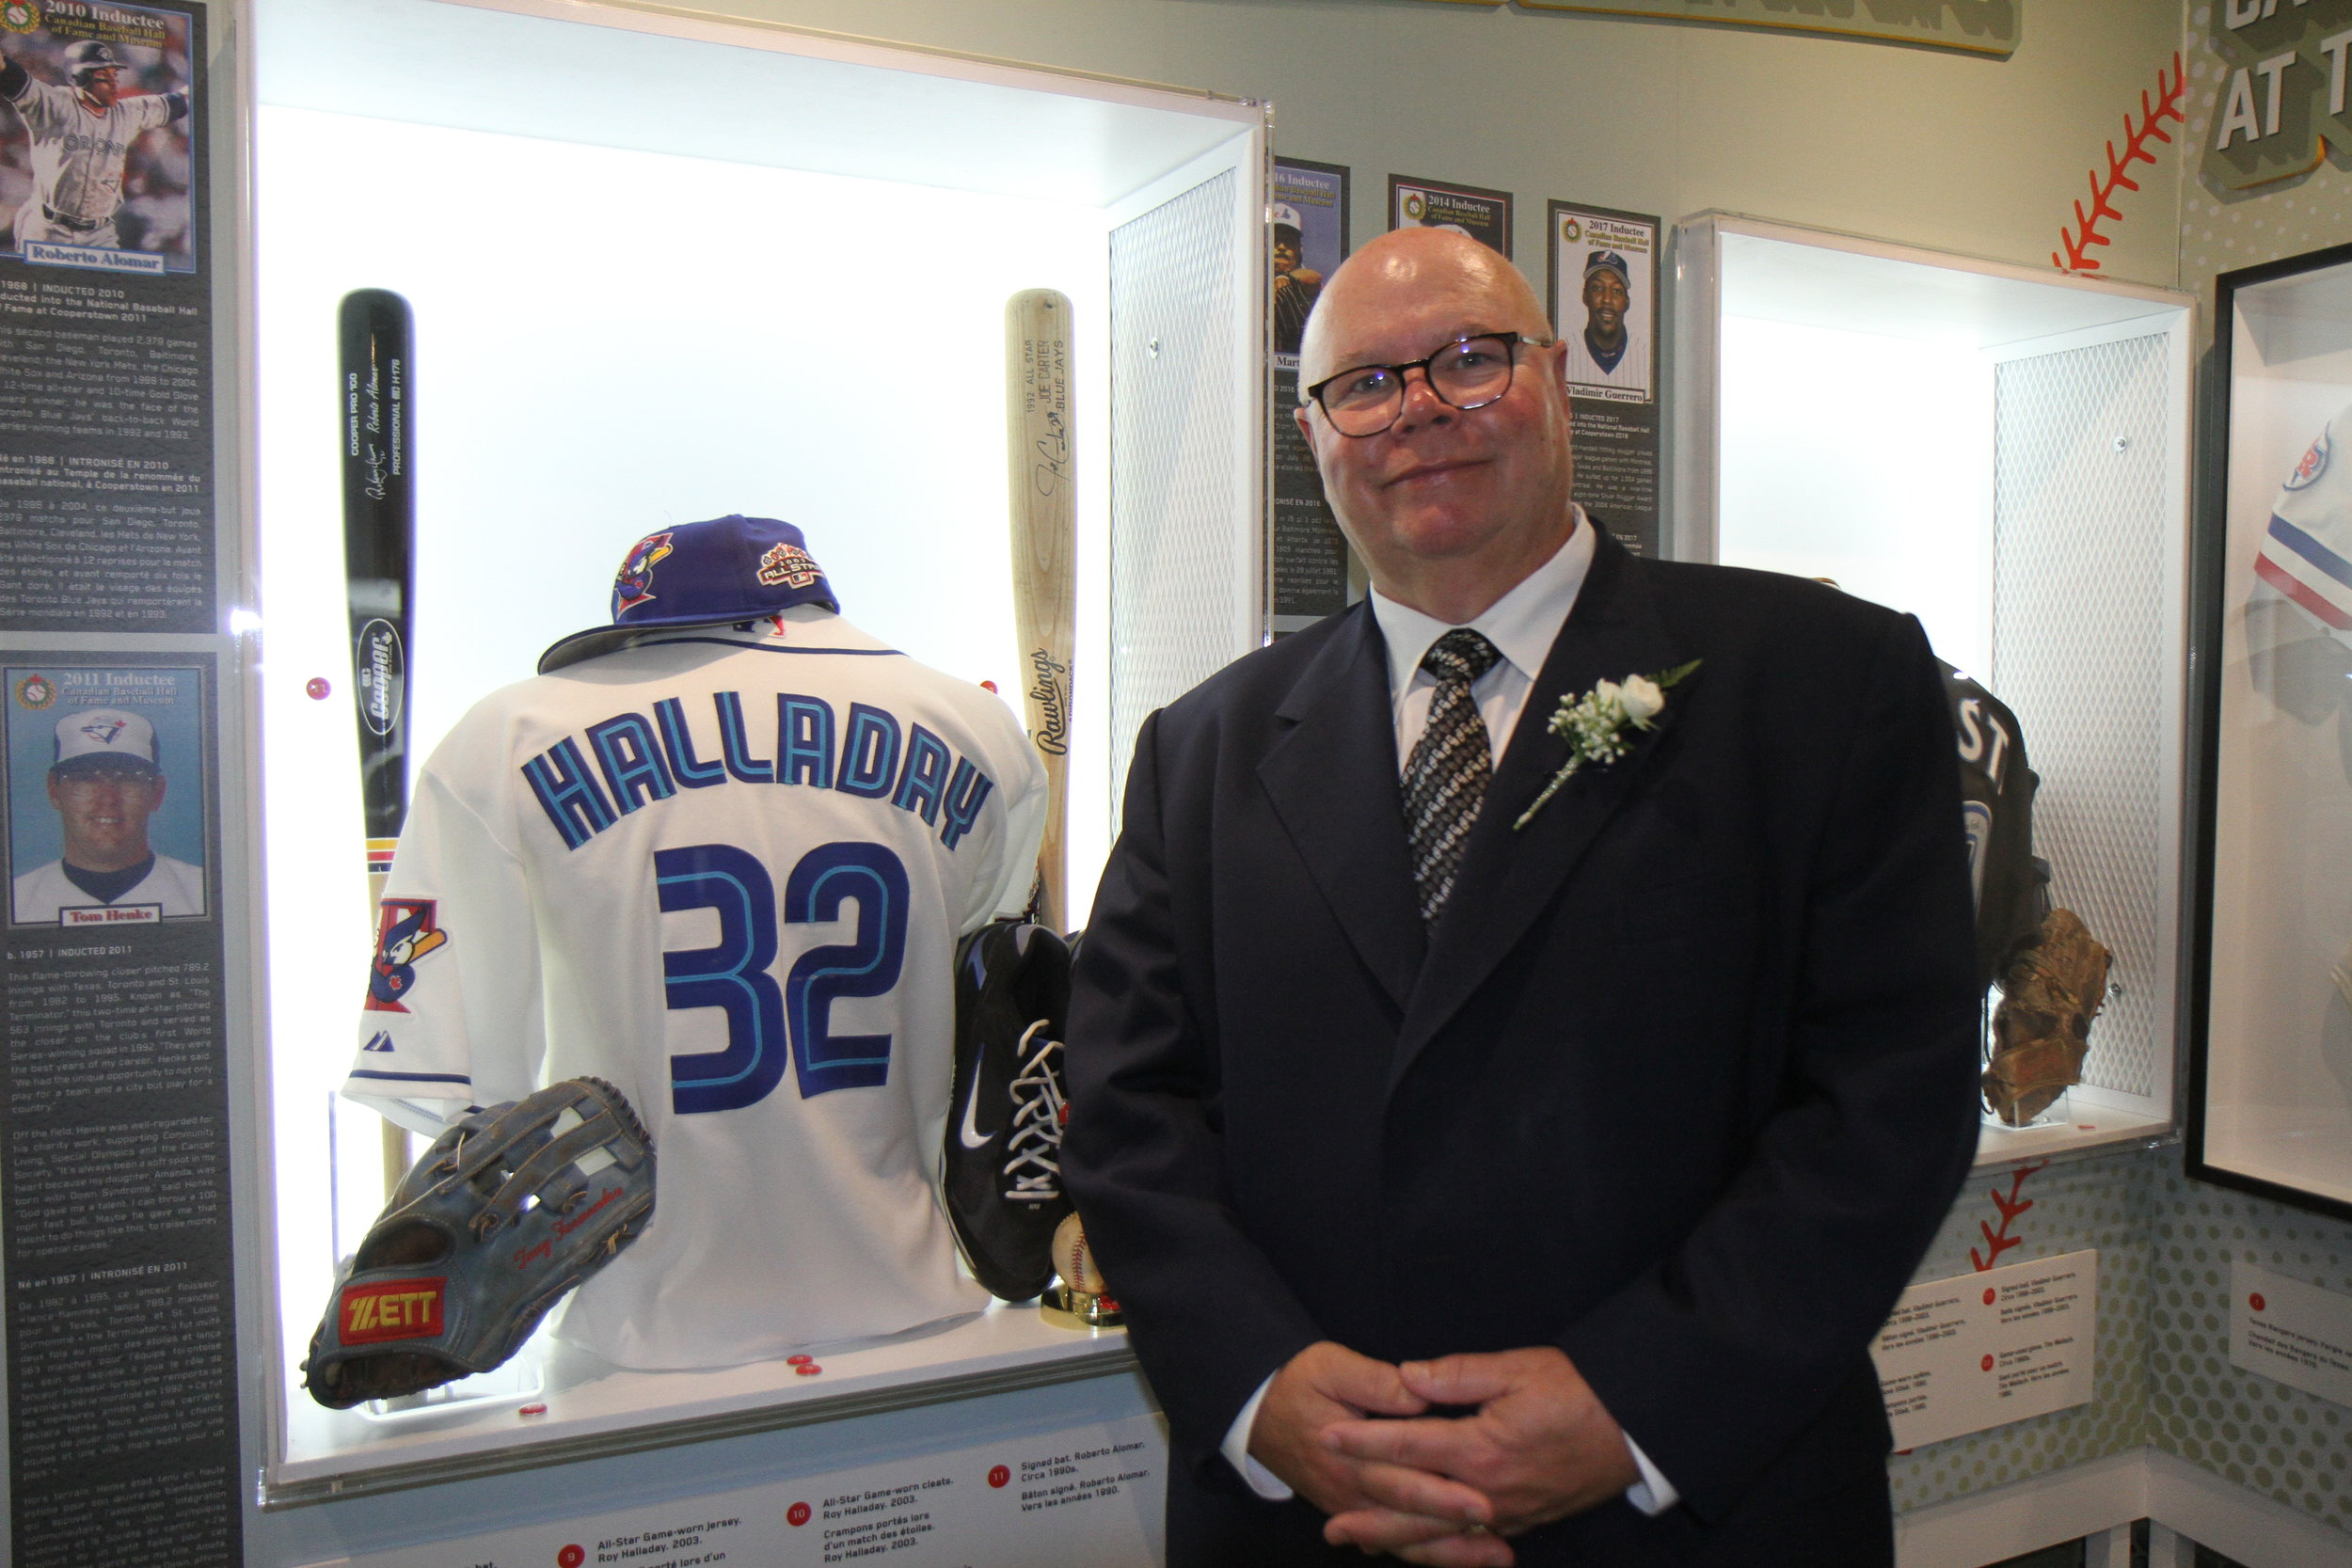 Former Blue Jays general manager and newly minted Canadian Baseball Hall of Fame inductee Gord Ash with some of the Blue Jays memorabilia on display at the museum in St Marys, Ont. Photo: J.P. Antonacci